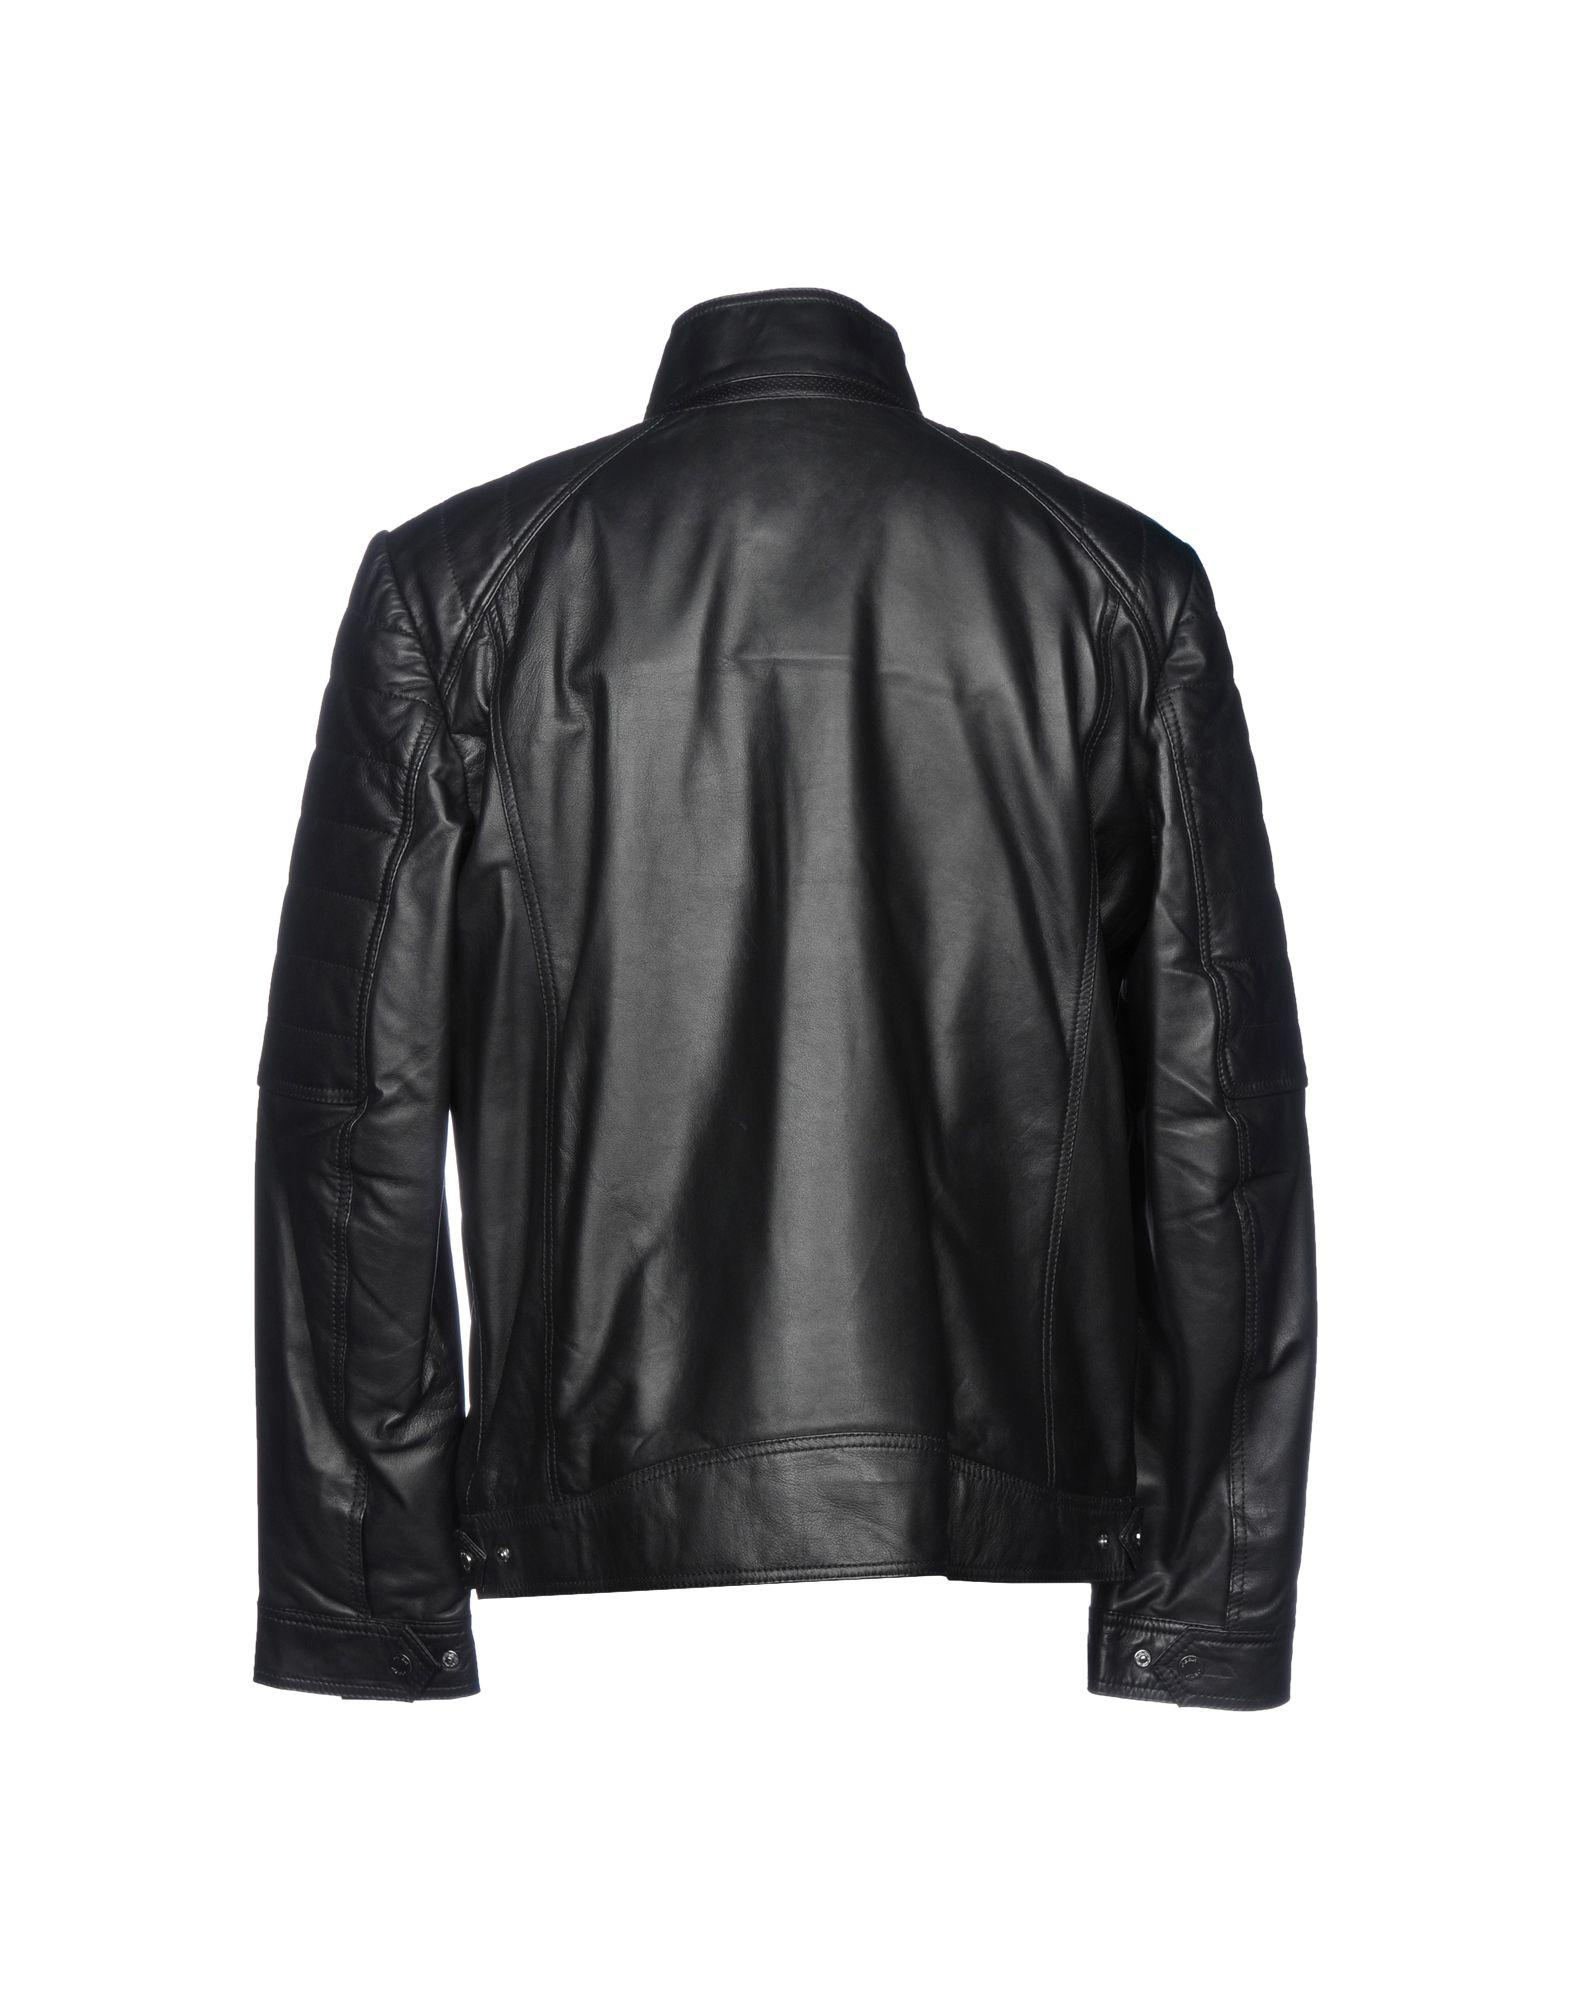 Geox Leather Jacket in Black for Men